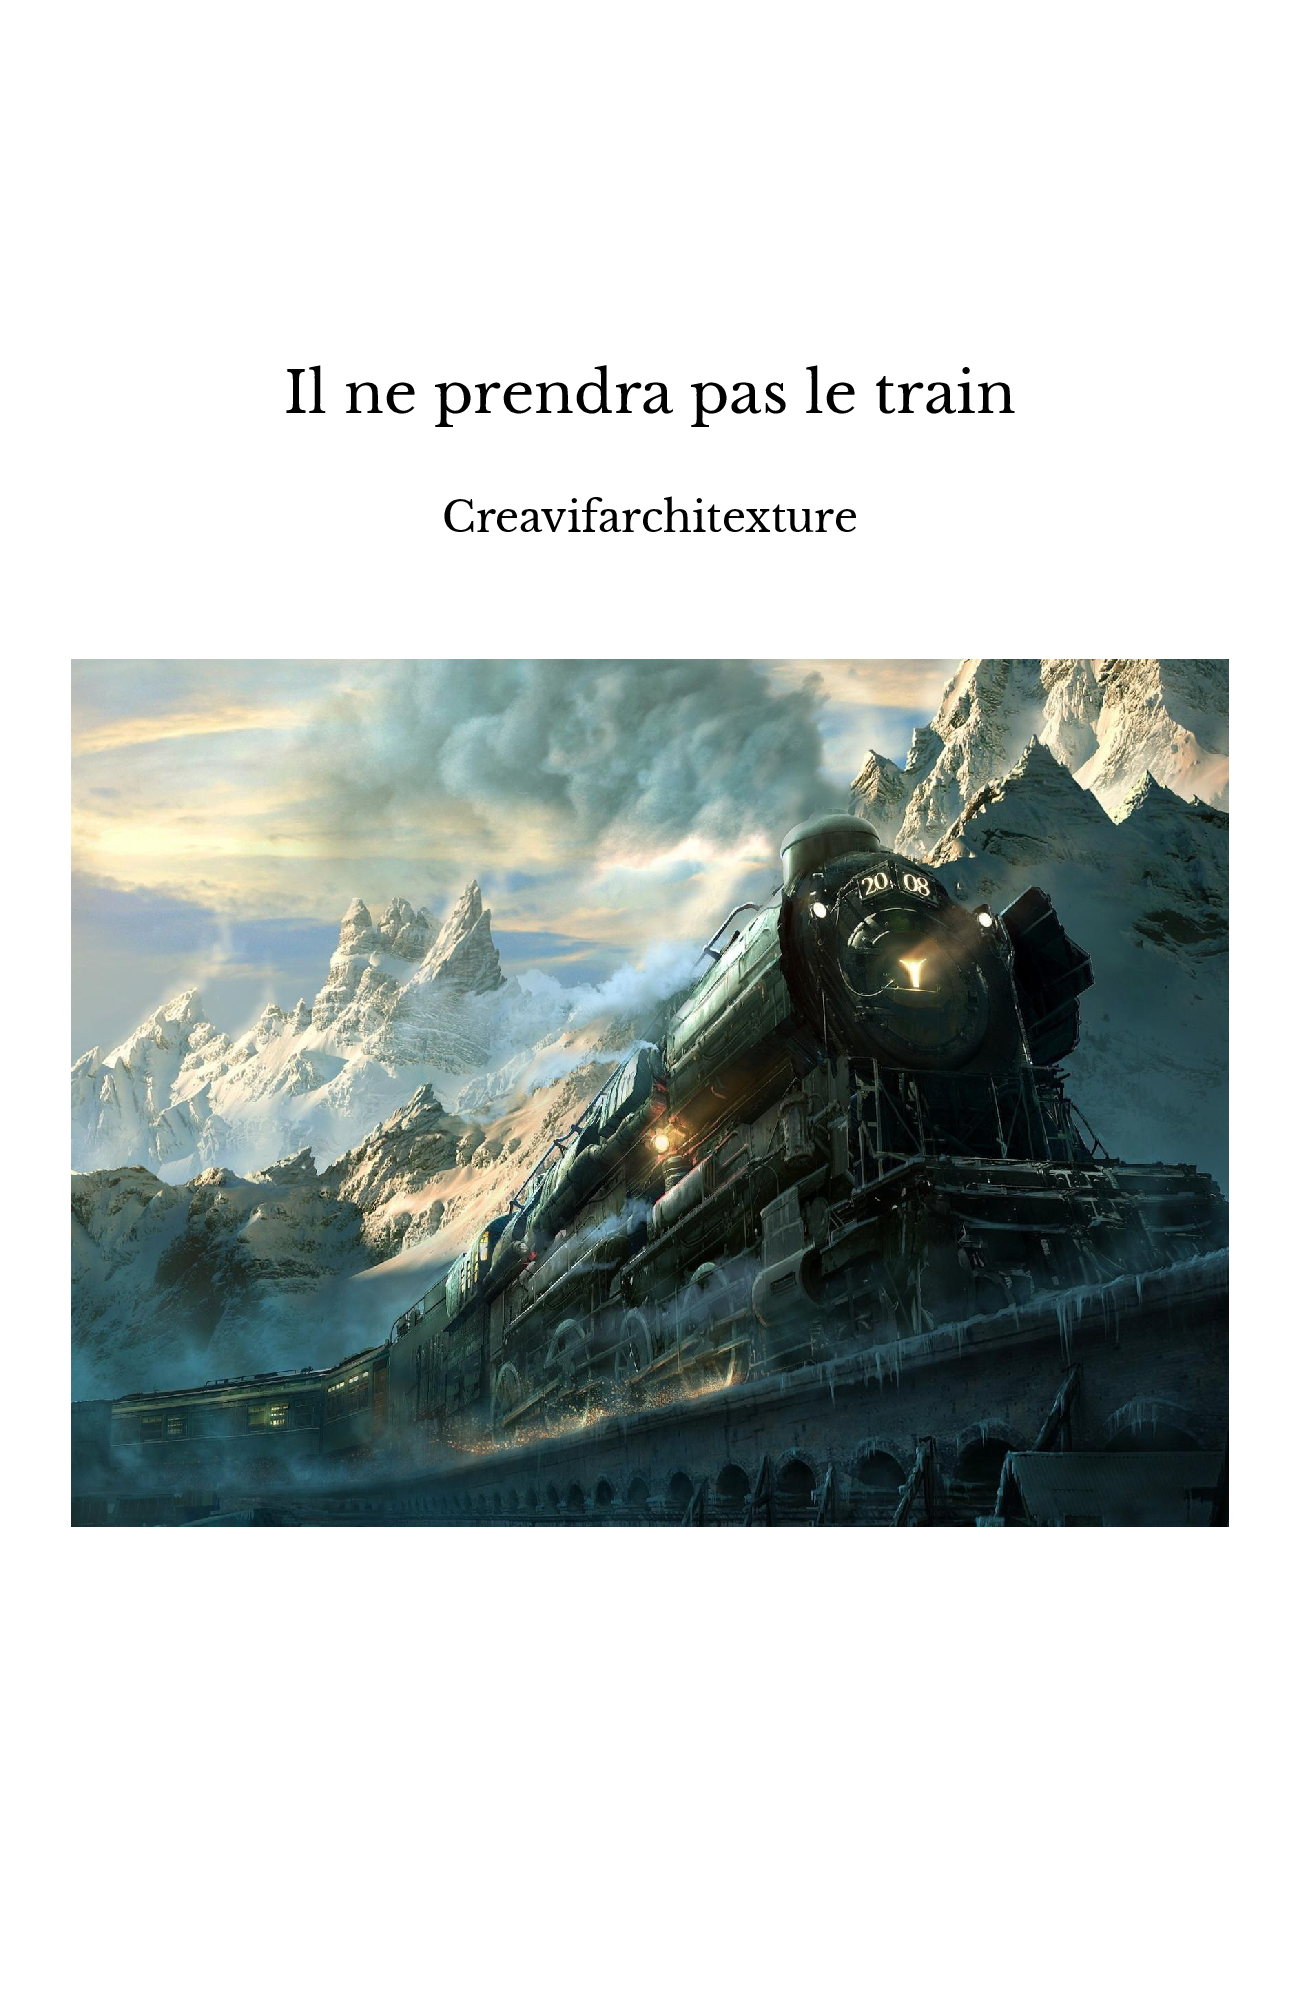 Il ne prendra pas le train